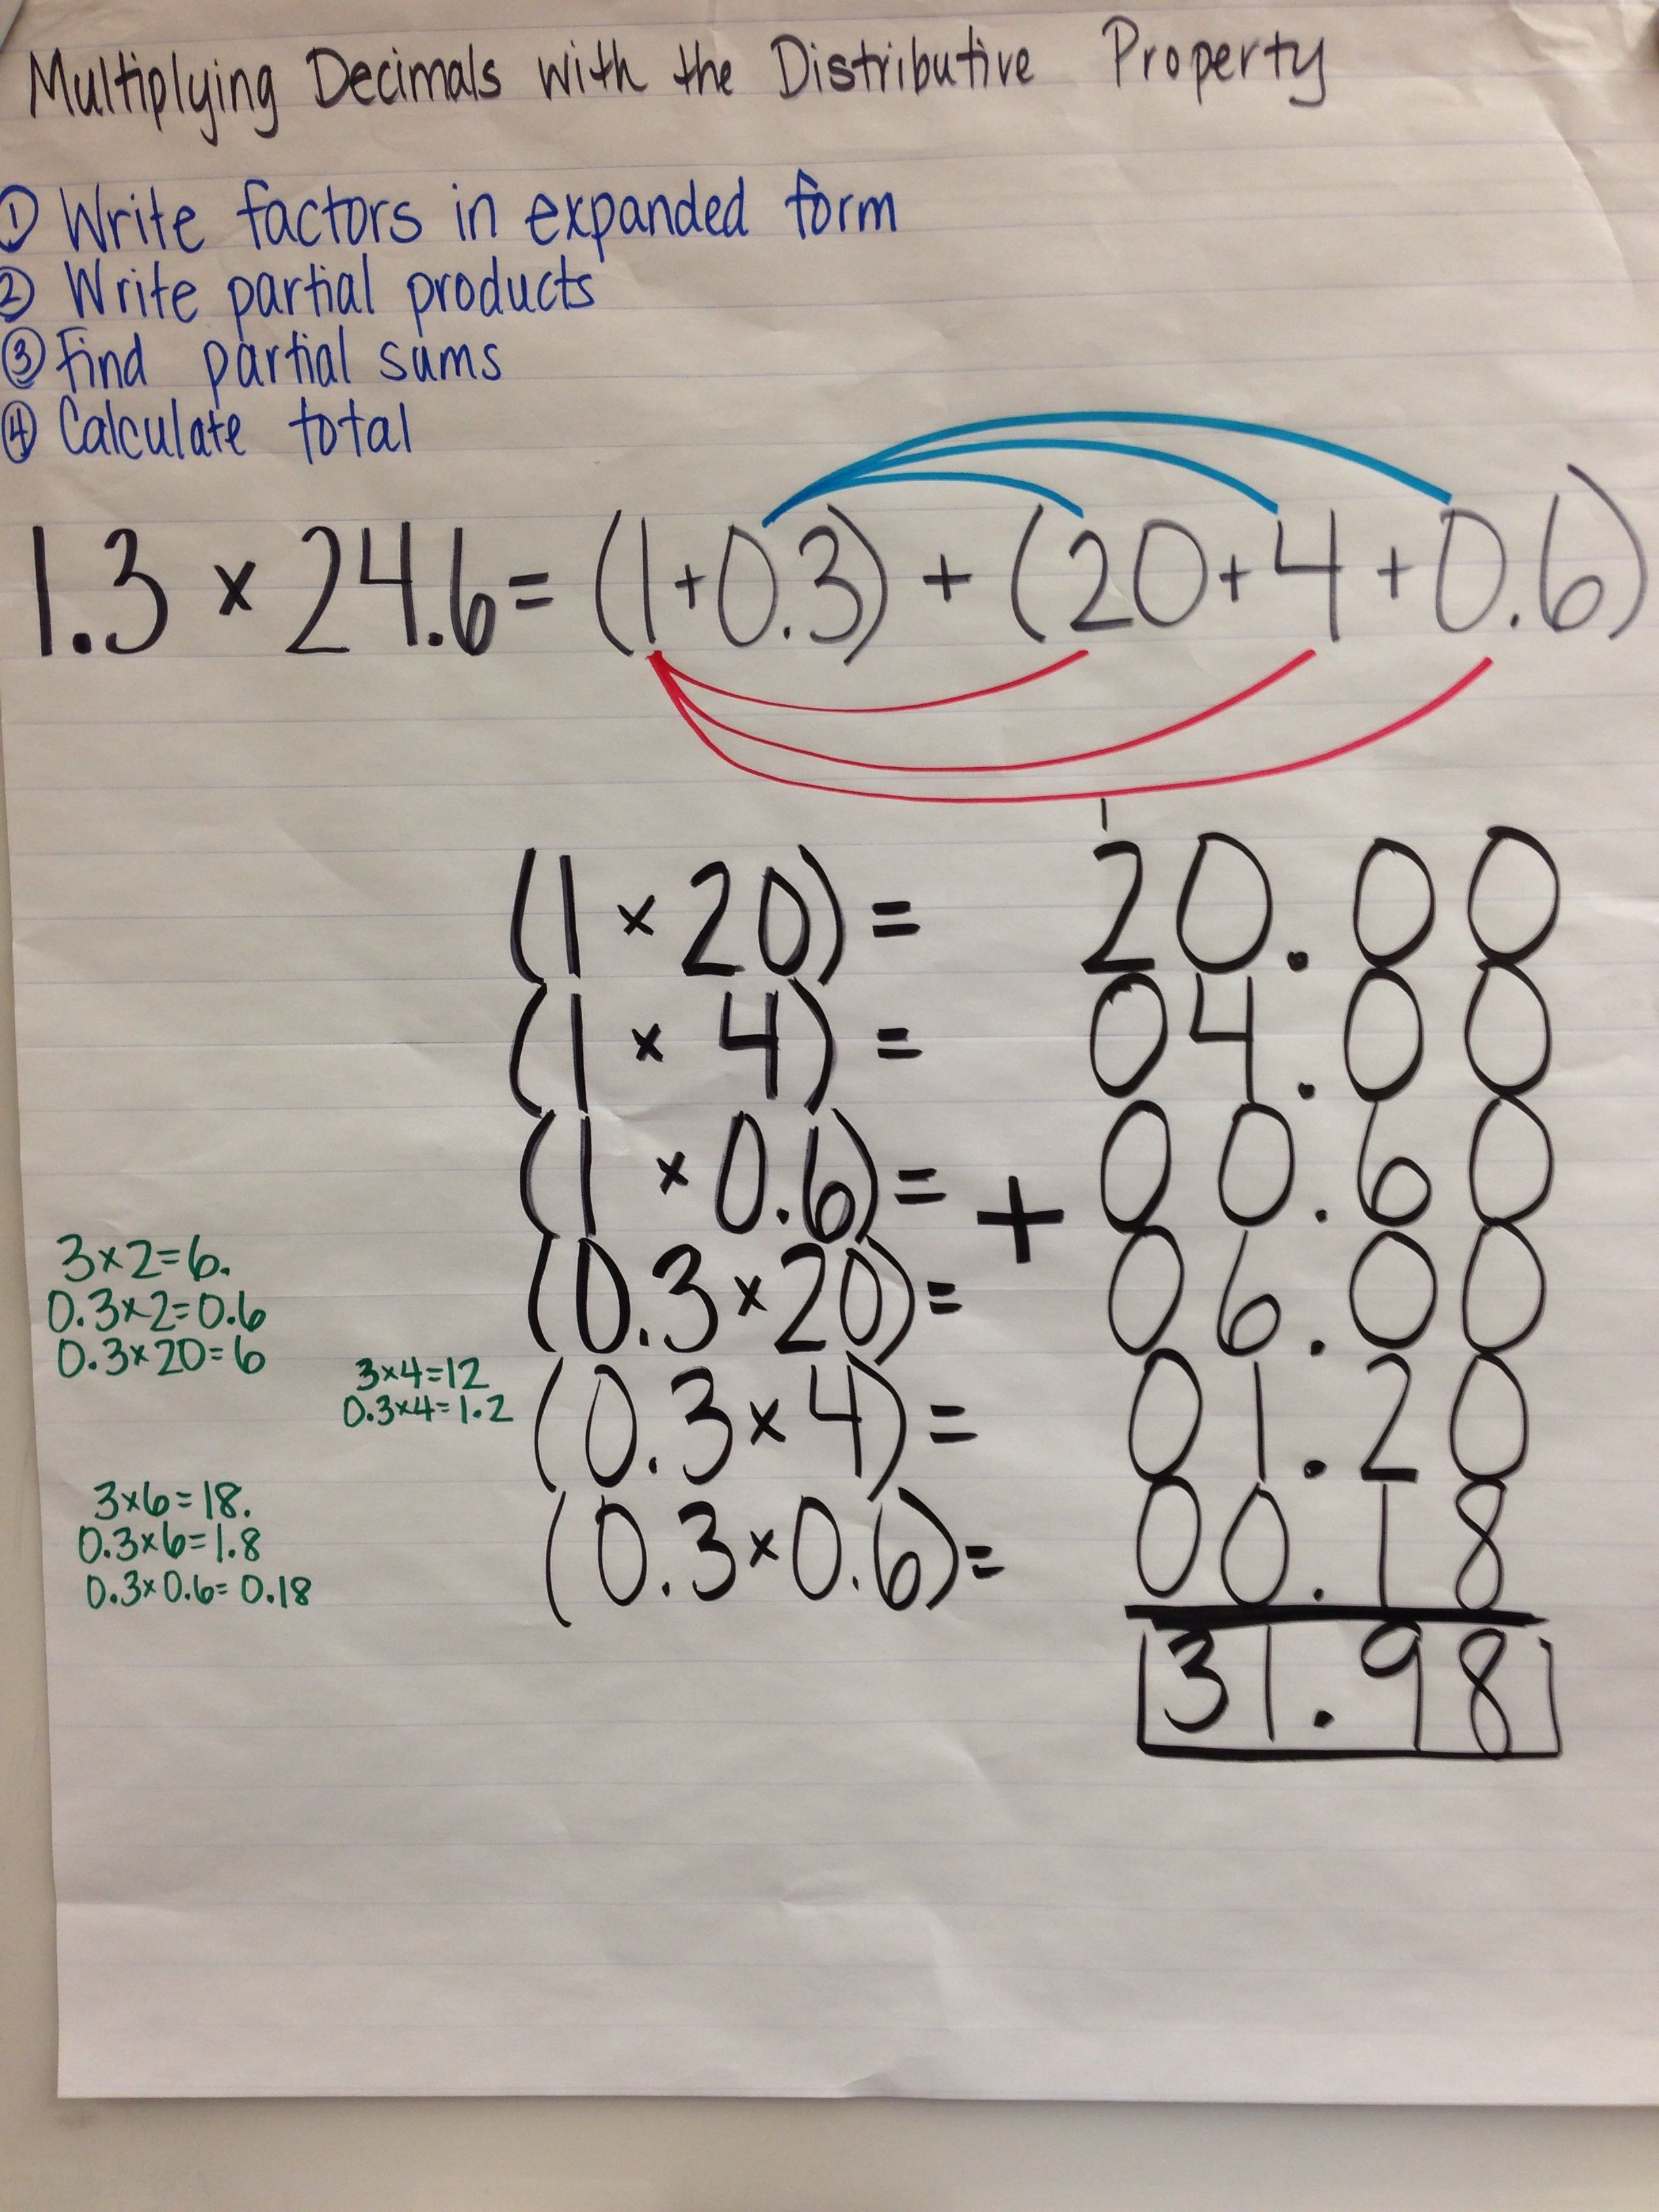 Multiplying Decimals With The Distributive Property